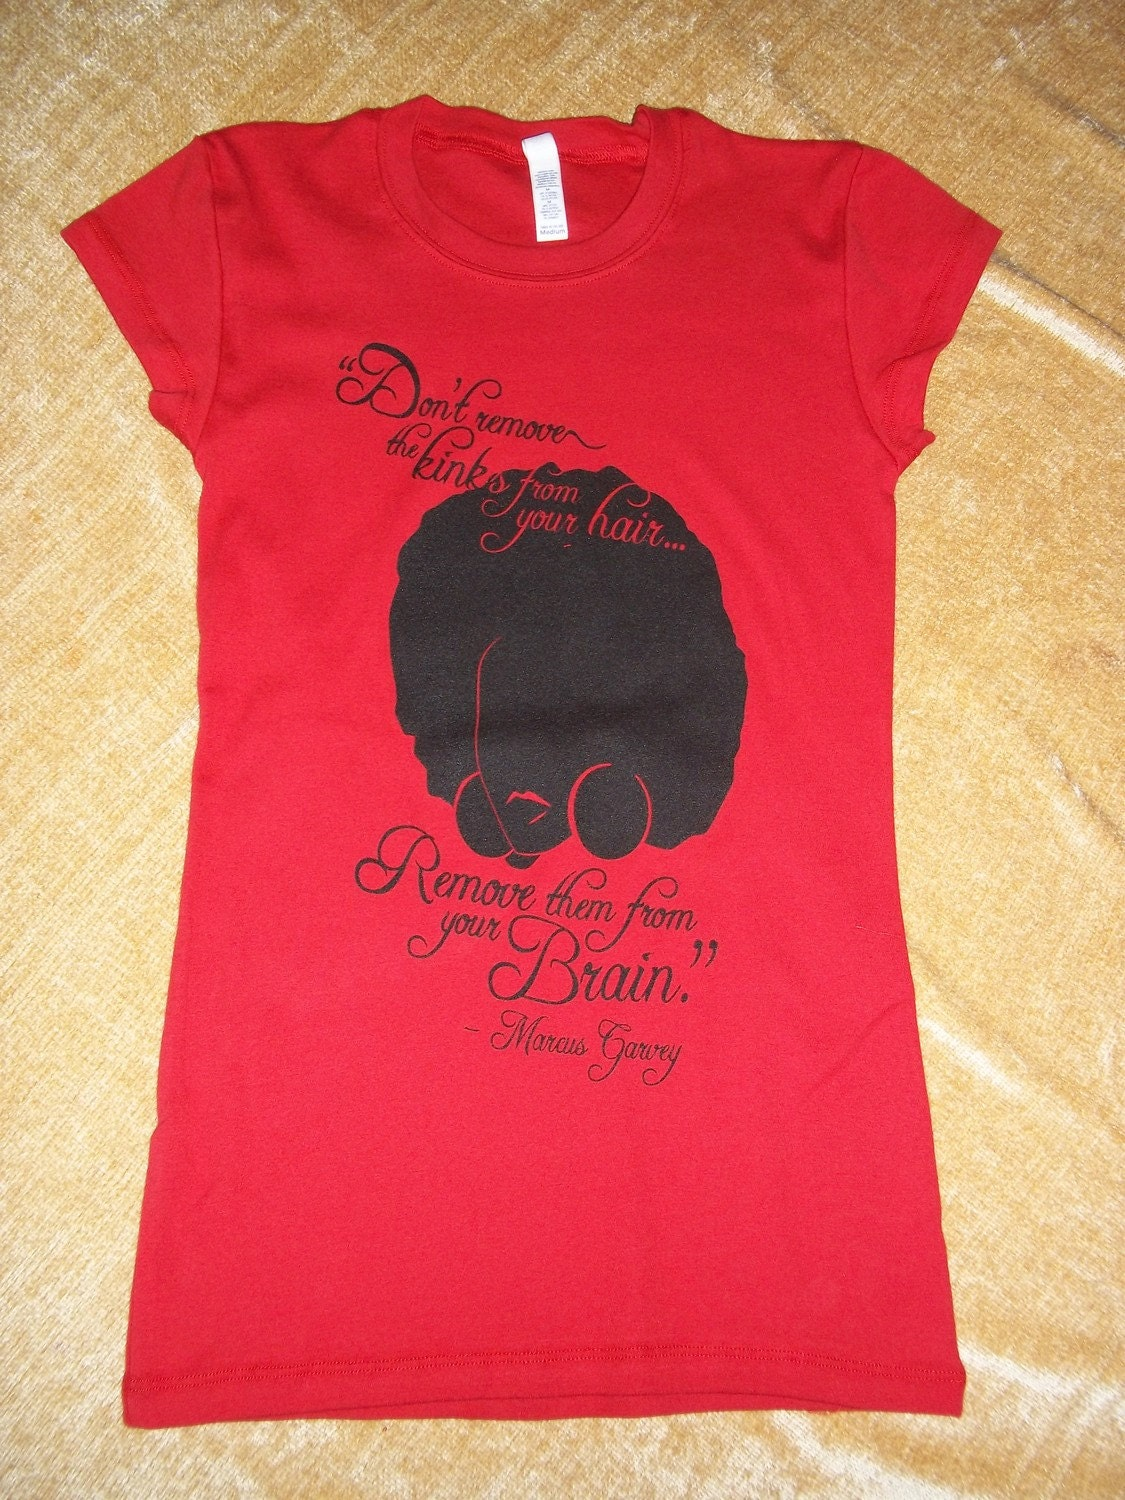 kinks quote by marcus garvey natural hair shirt size small